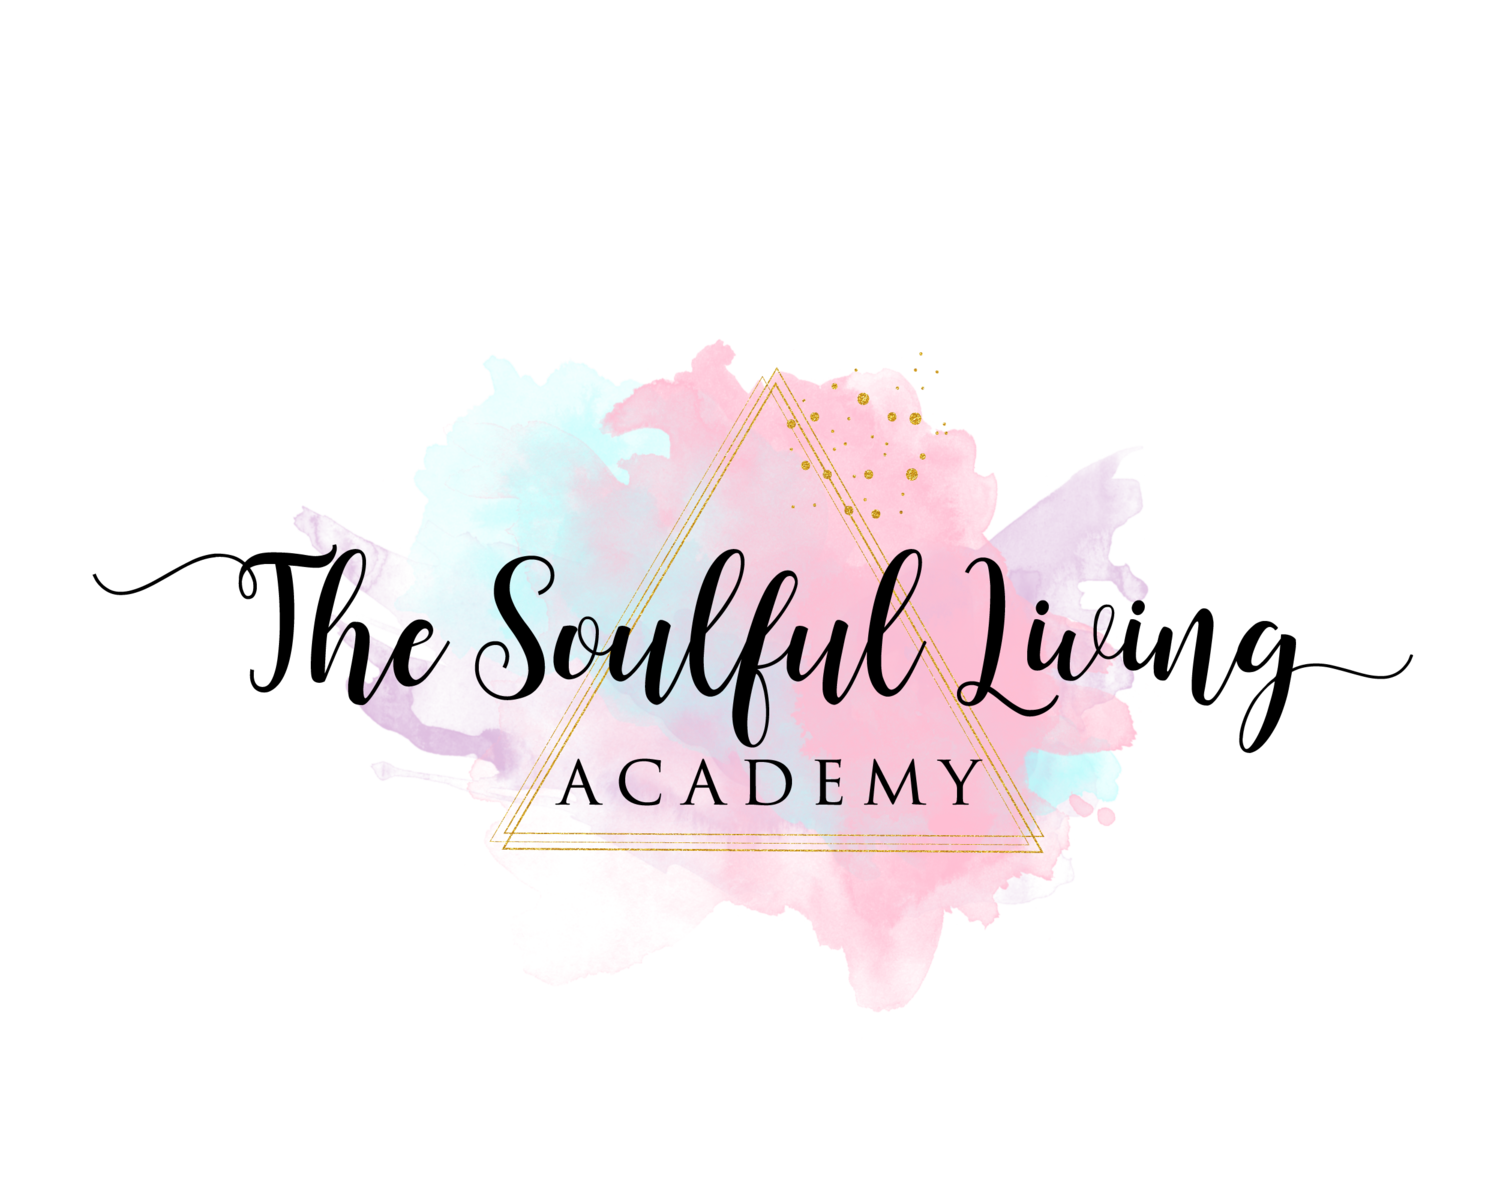 The Soulful Living Academy